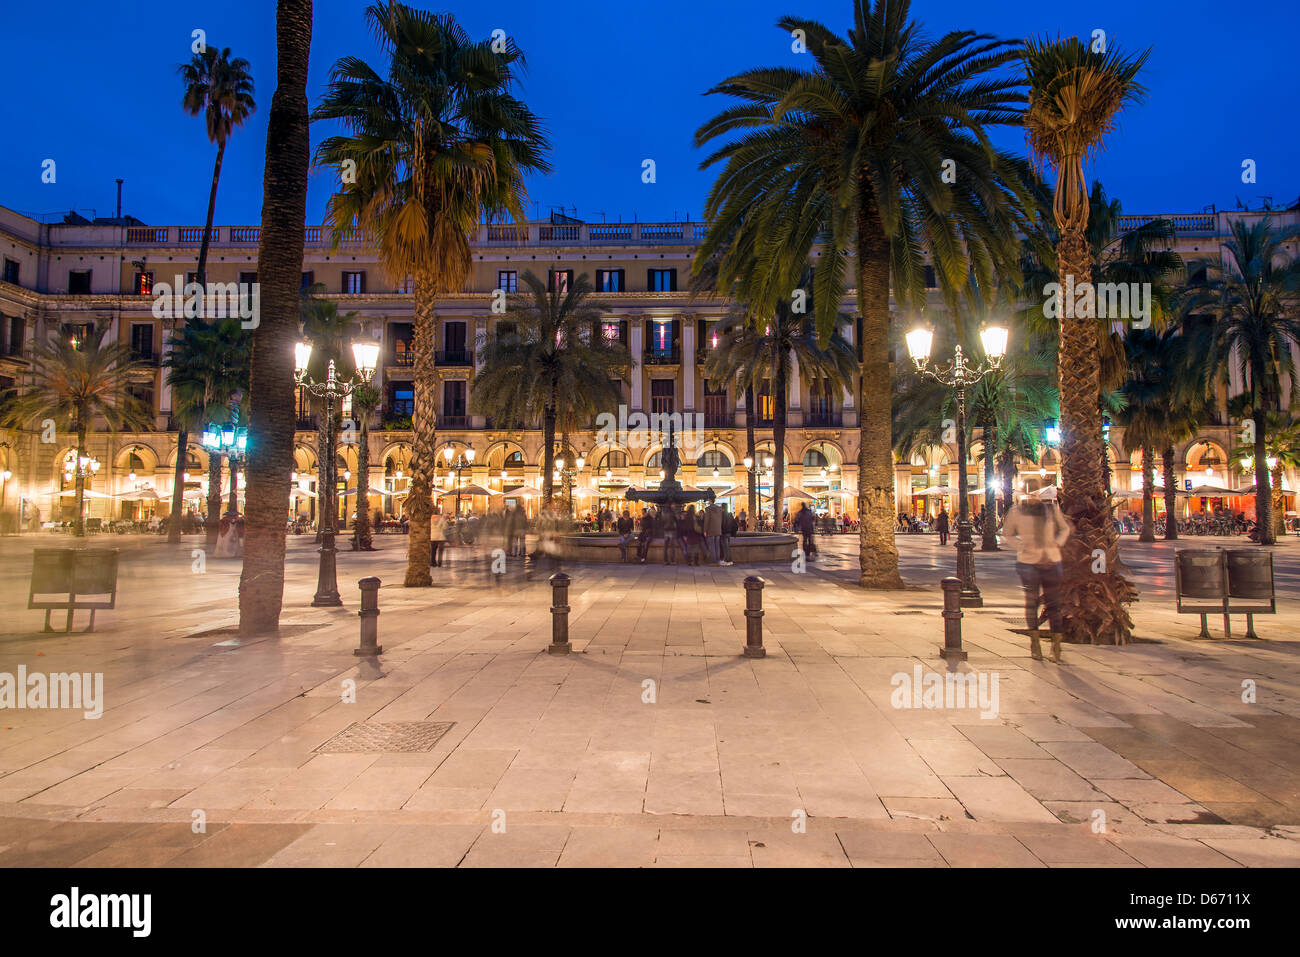 Night view of Plaça Reial or Plaza Real, Barcelona, Catalonia, Spain - Stock Image